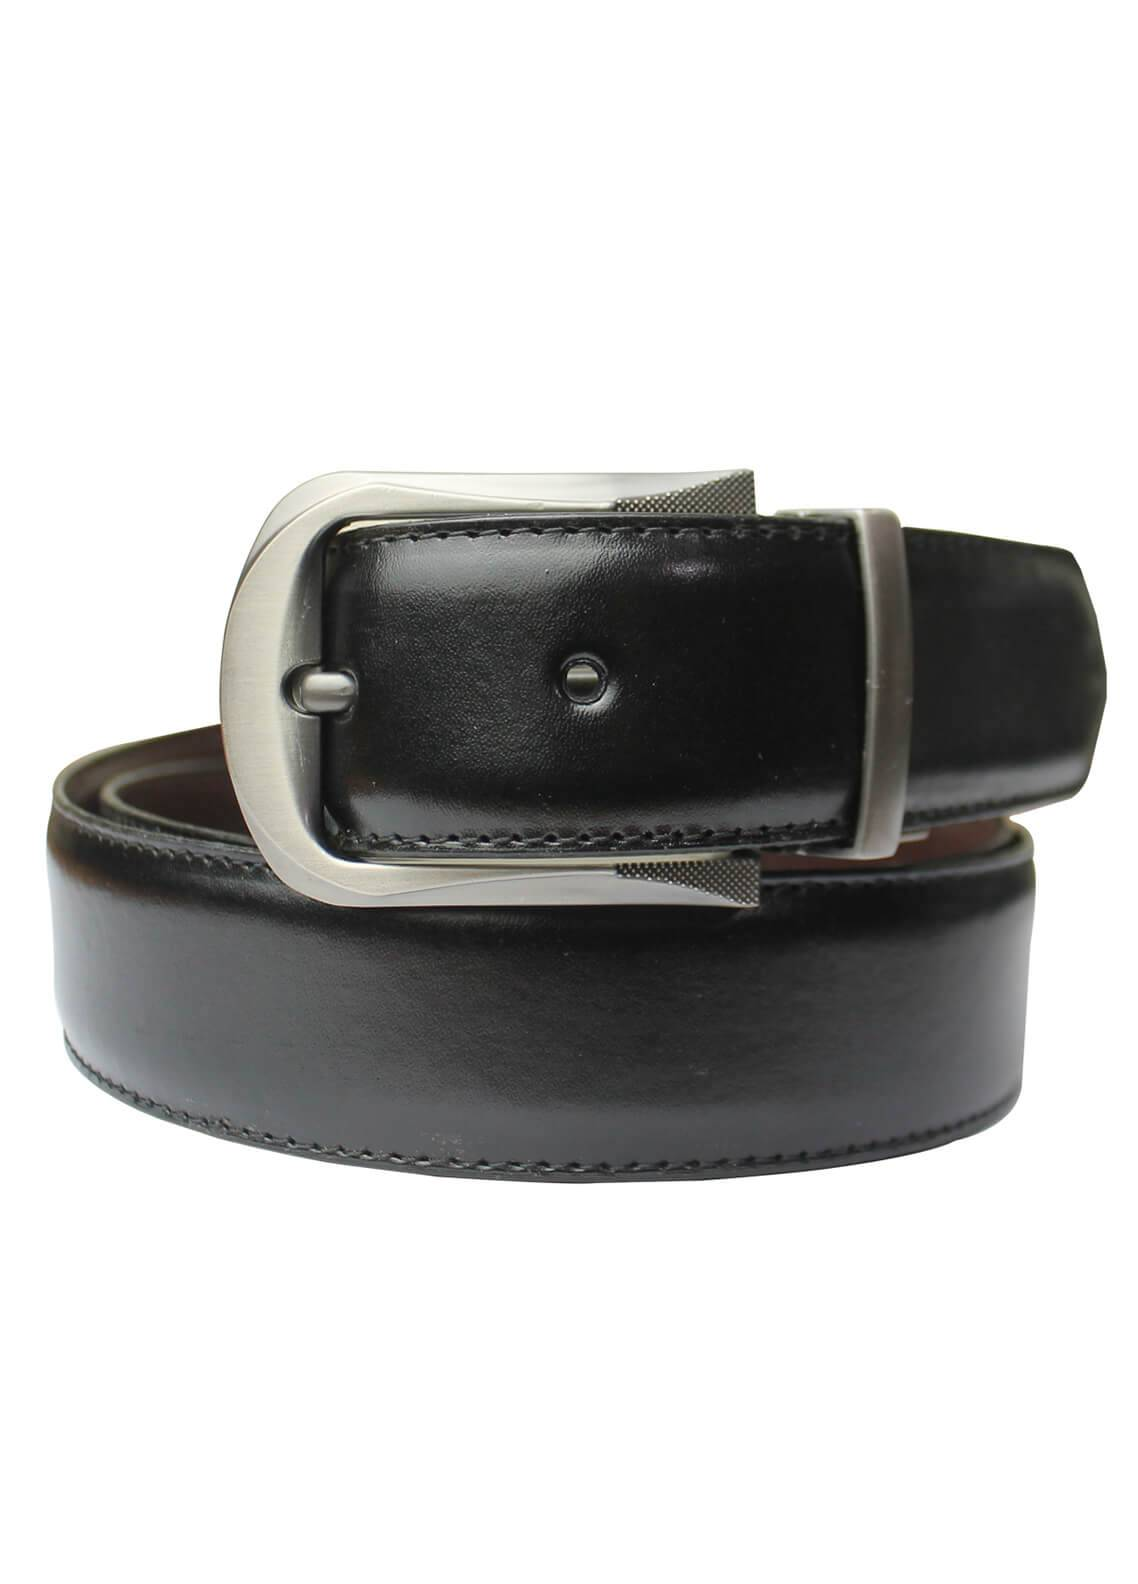 Shahzeb Saeed Textured Leather Men Belts BELT-151 Black - Casual Accessories